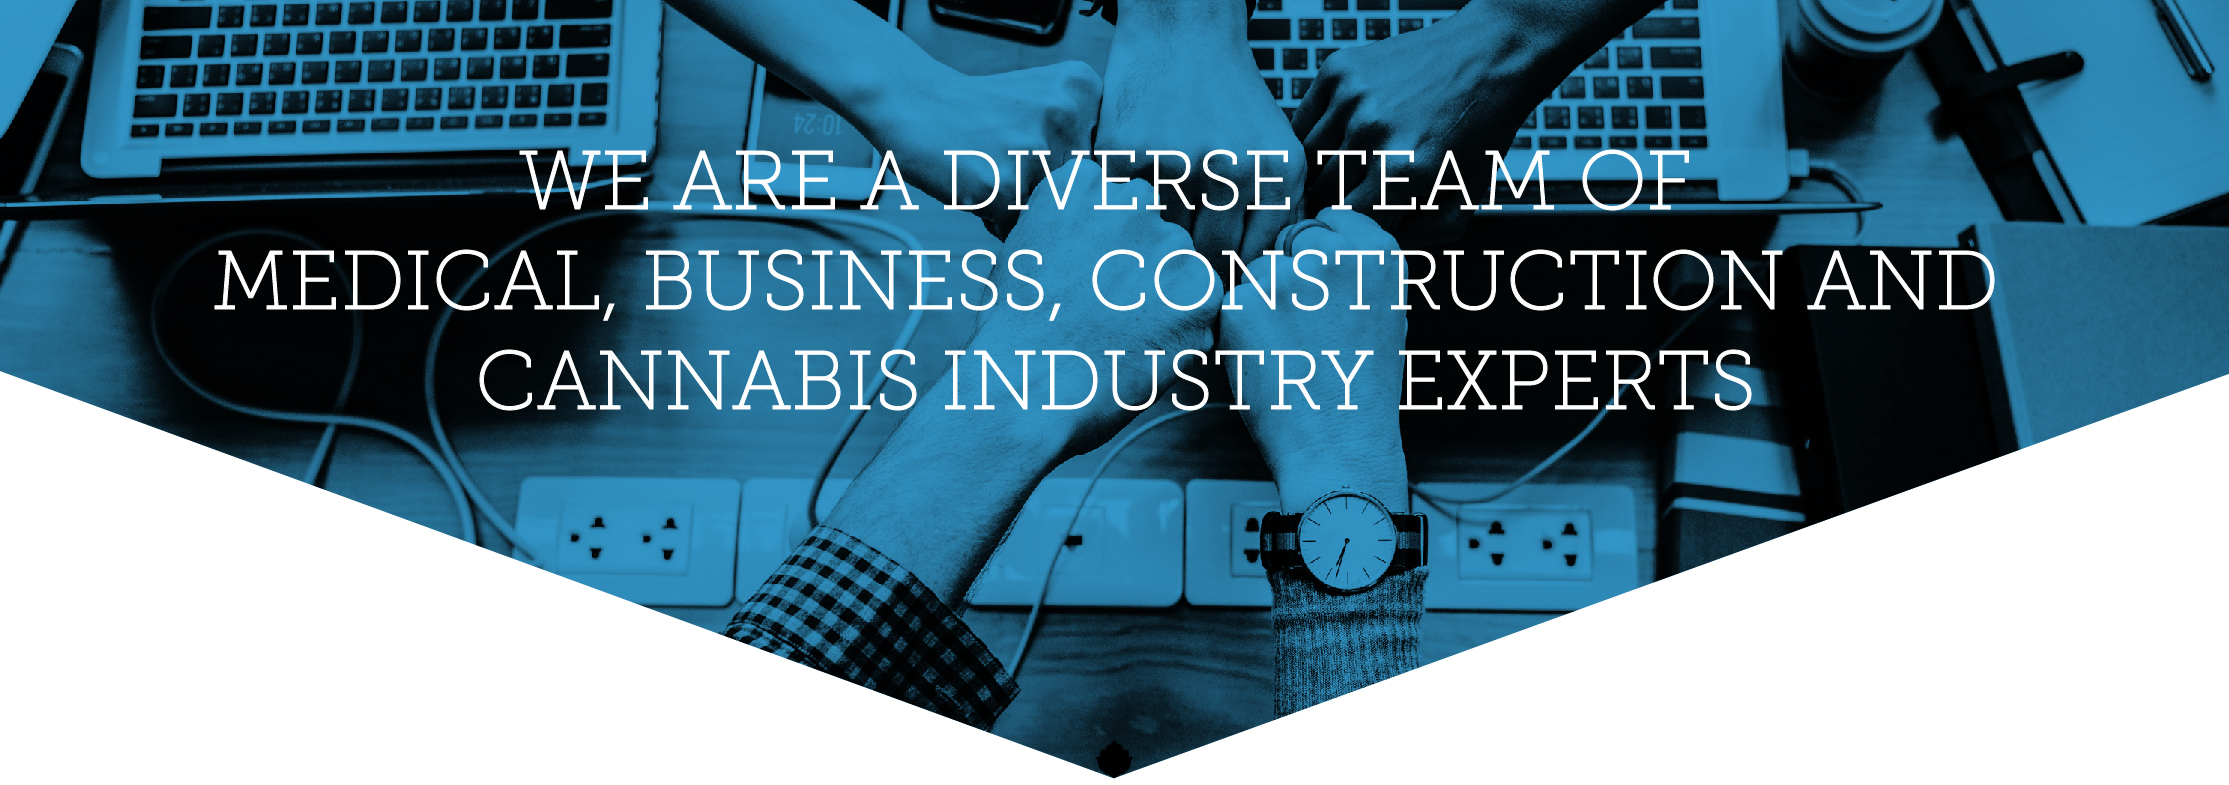 We are a diverse team of Medical, Business, Construction and Cannabis Industry Experts